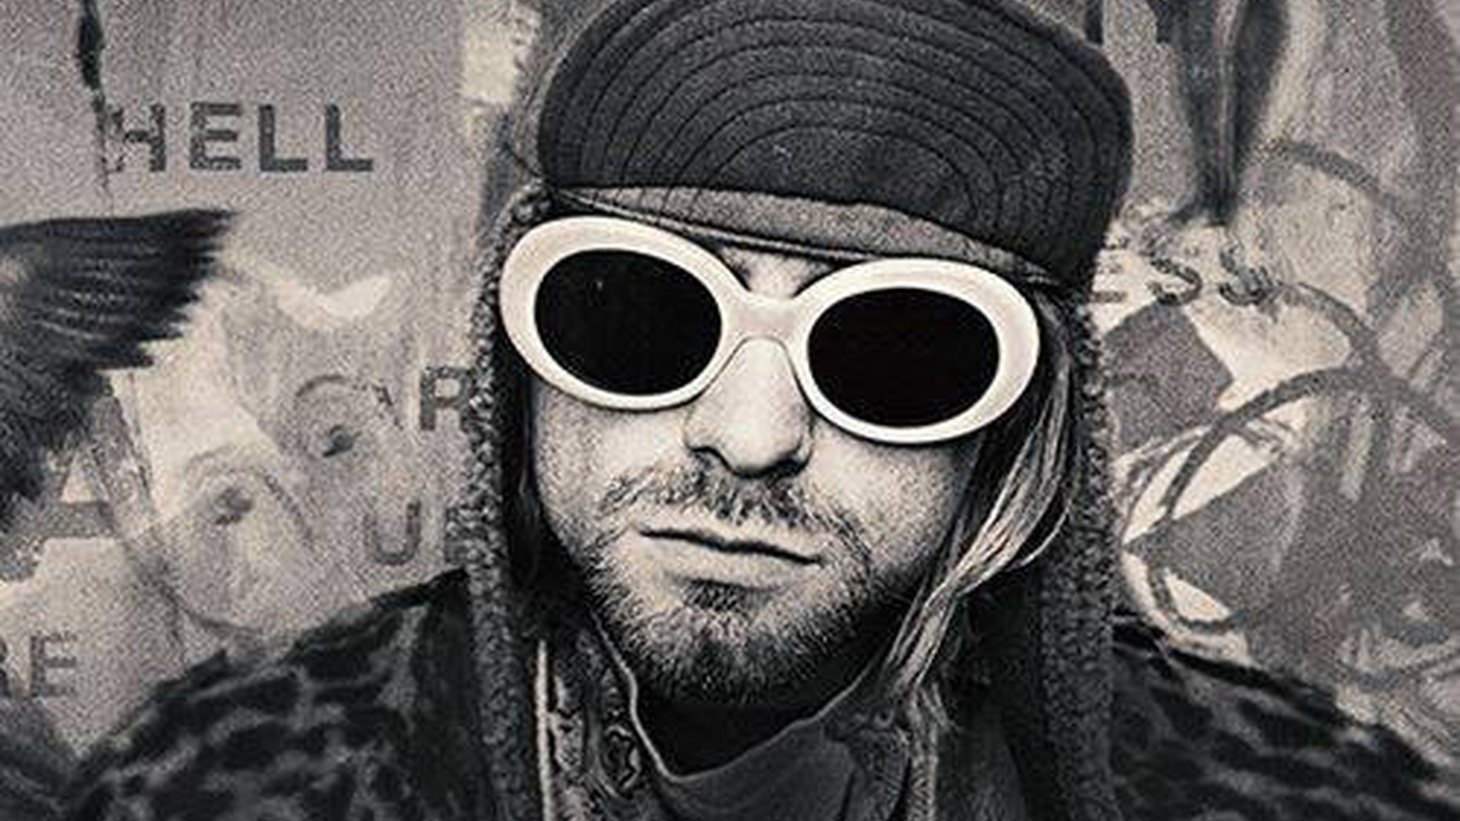 In 2007, Kurt Cobain's widow, Courtney Love, contacted documentary filmmaker Brett Morgen with the idea of making a film about her late husband. Eight years and many twists and turns later, the film Kurt Cobain: Montage of Heck is showing this week until Thursday at the Arclight in Hollywood. It will also have its HBO premiere next Monday, May 4.